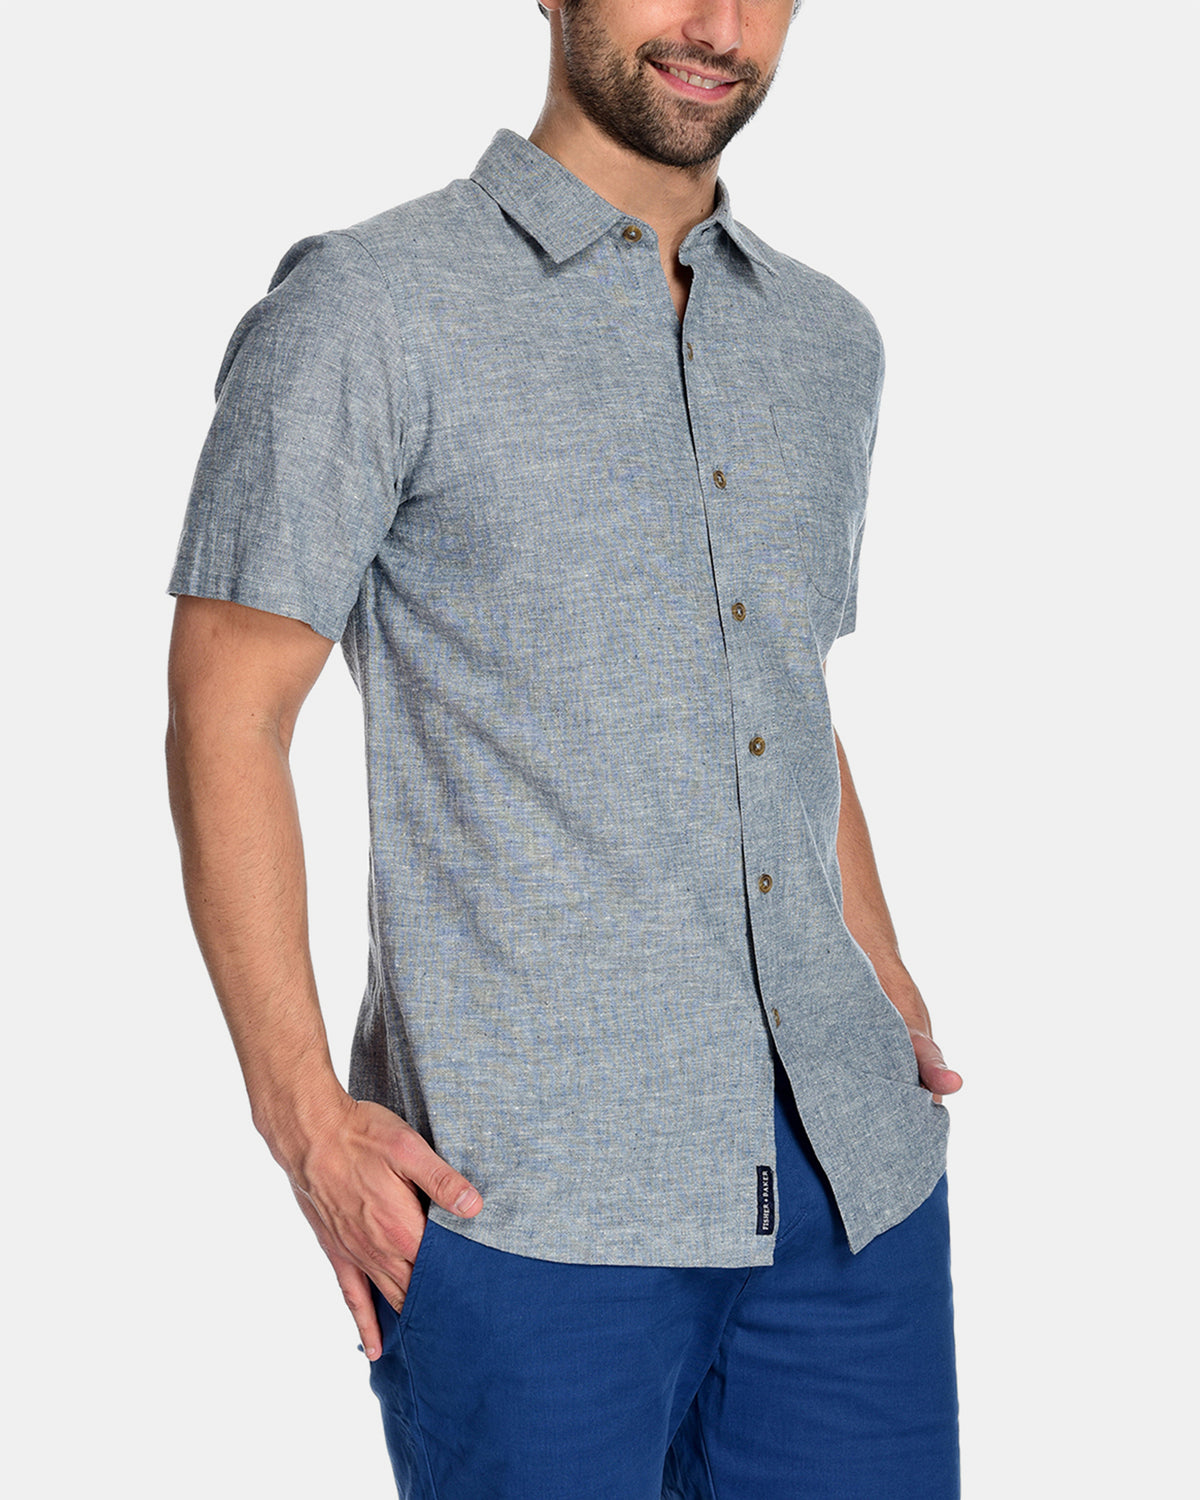 Men's Radium Shirt